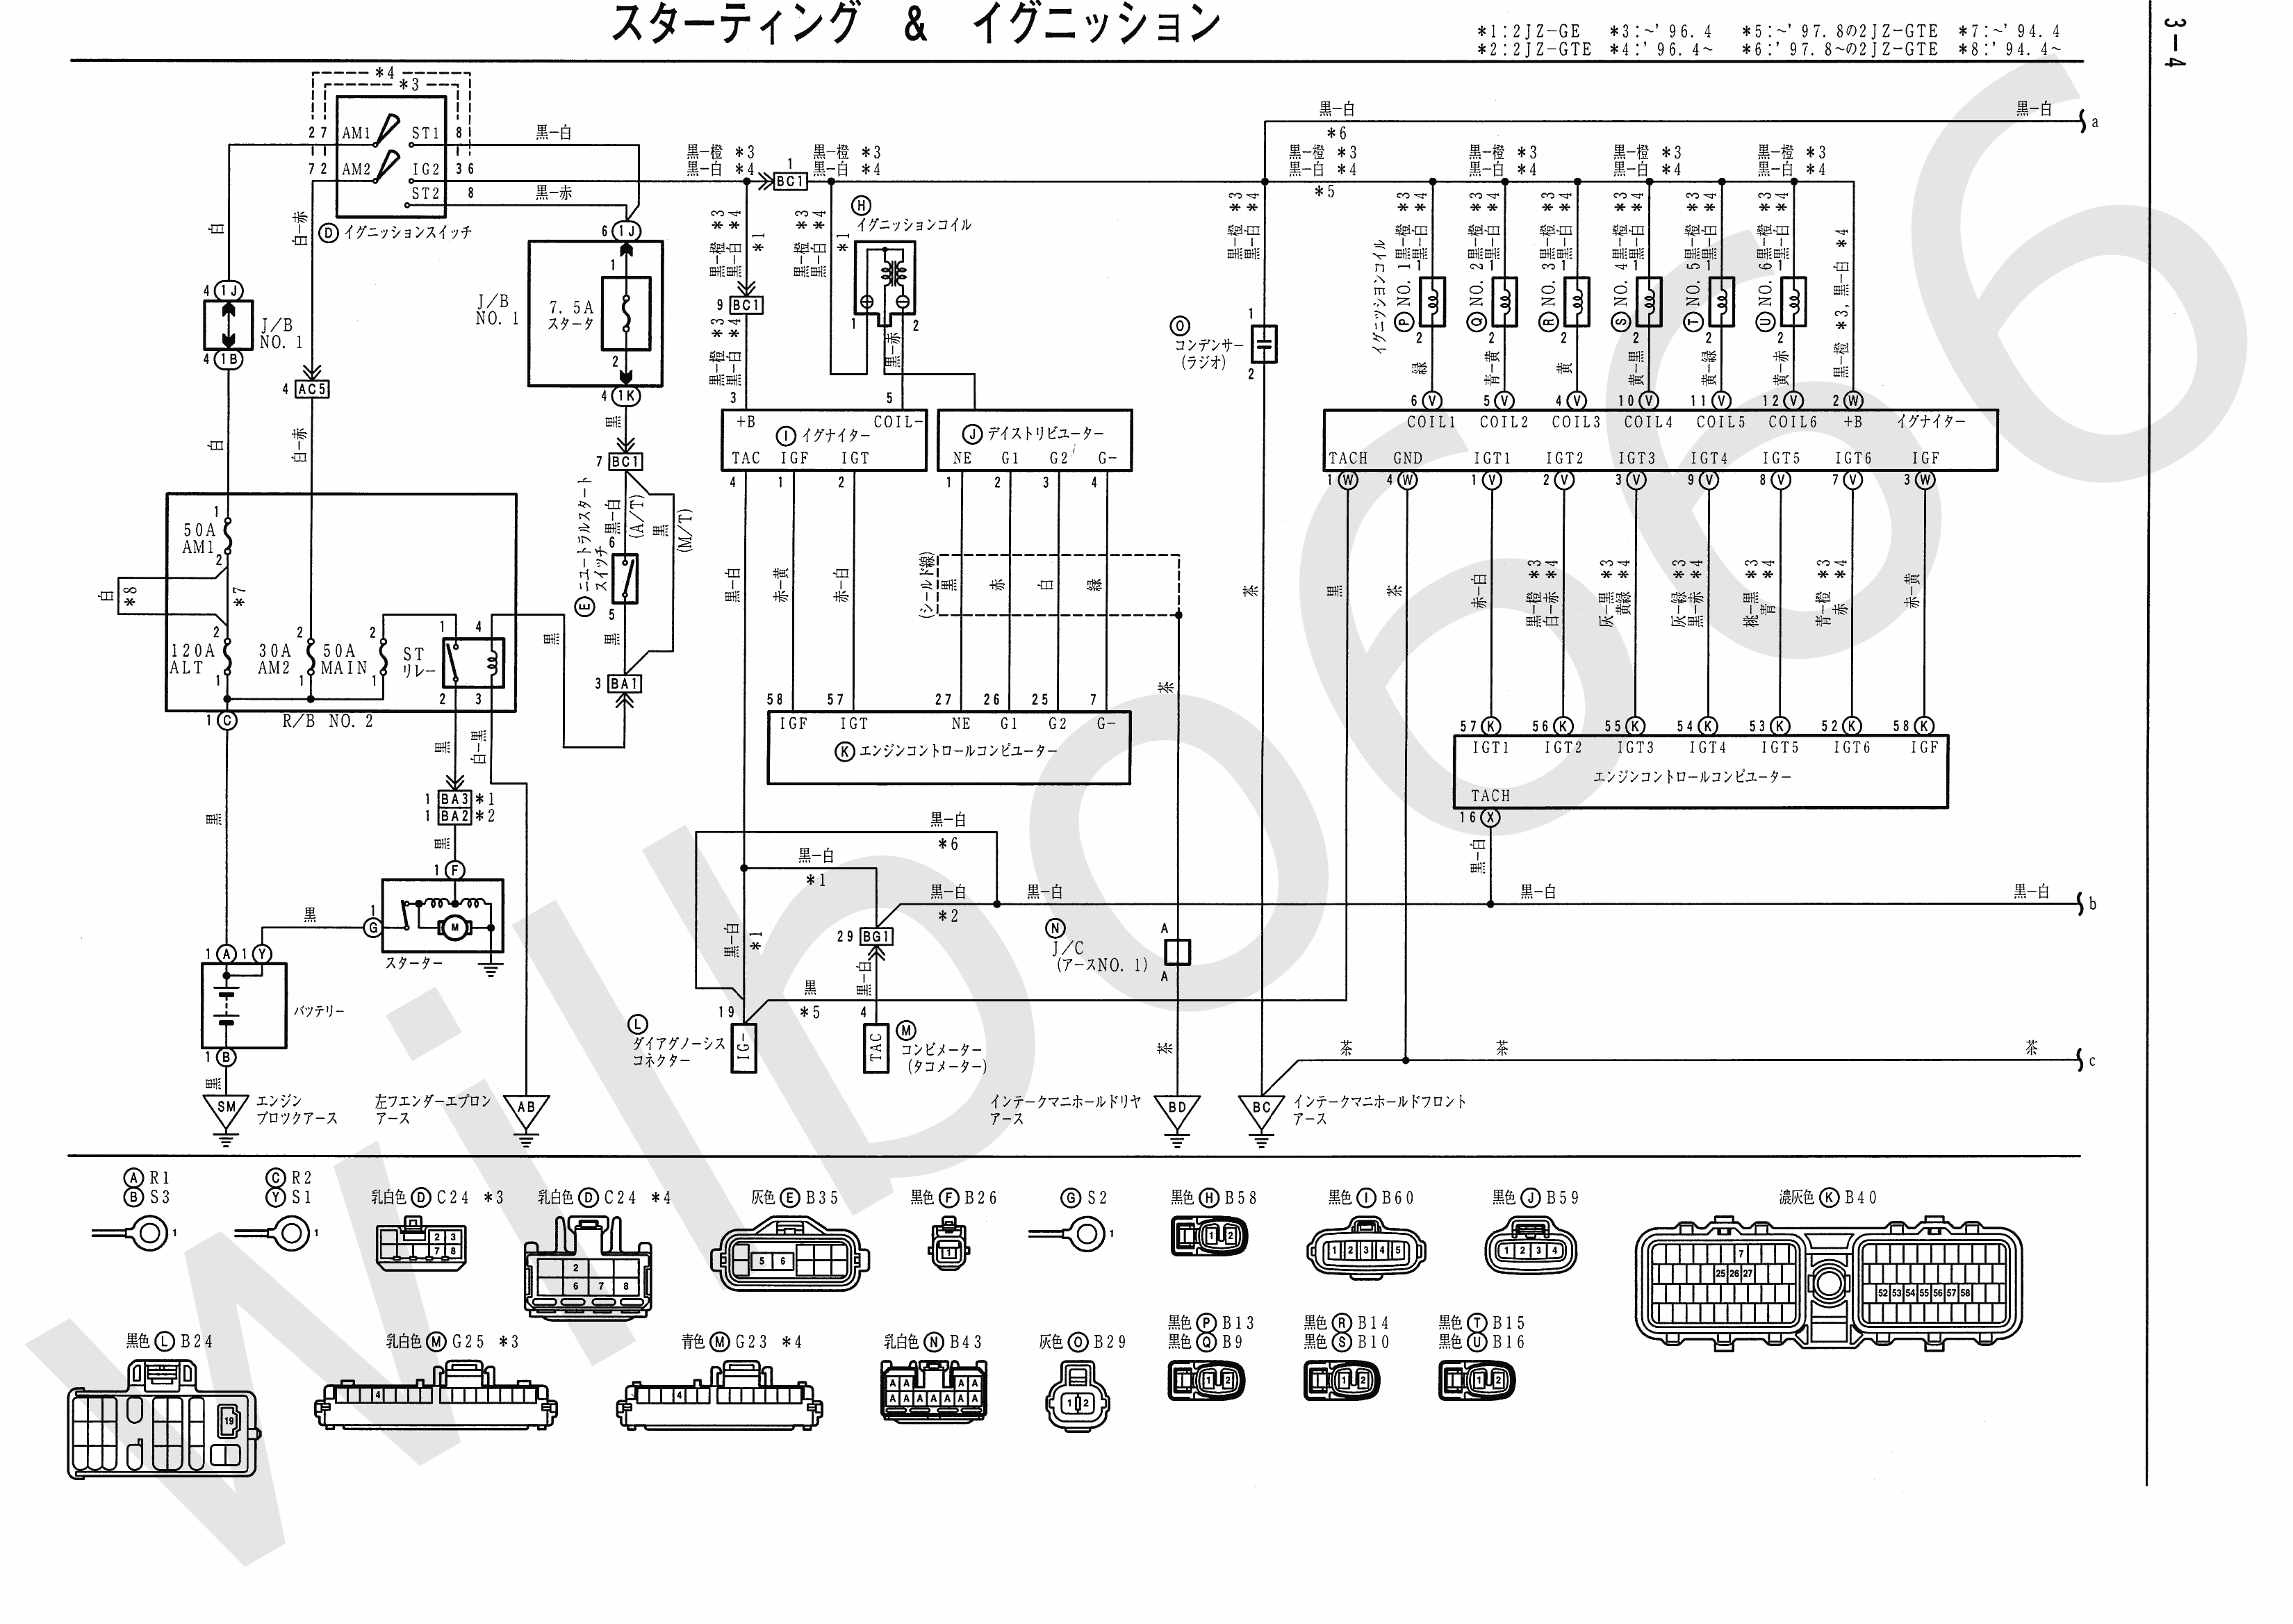 JZA80 Electrical Wiring Diagram 6742505 3 4 wilbo666 2jz ge jza80 supra engine wiring ge ignitor wiring harness at crackthecode.co